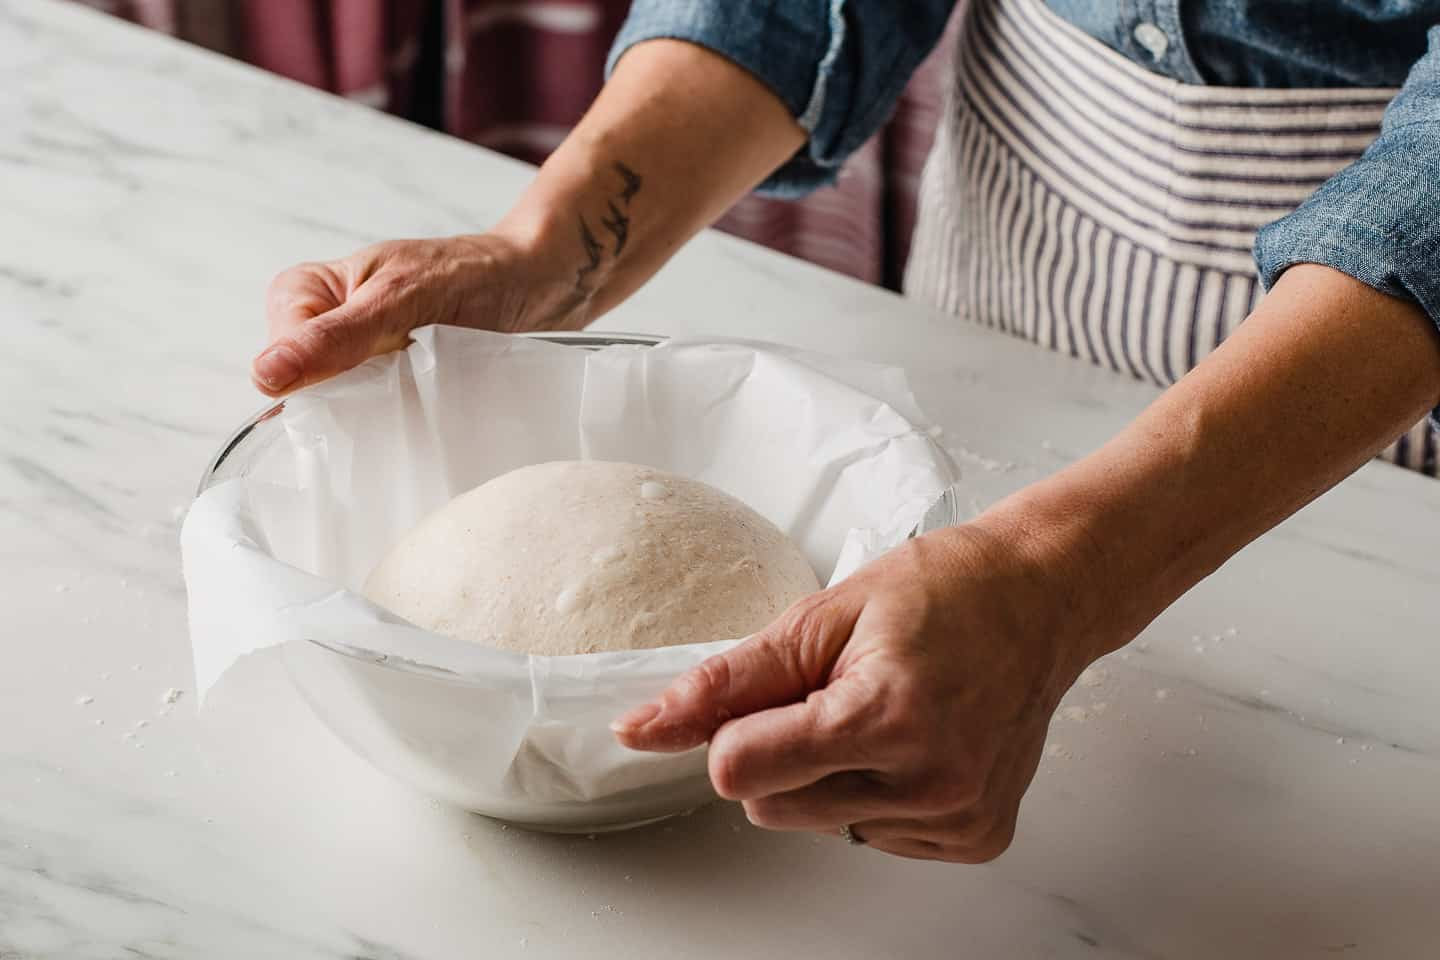 A woman placing a shaped dough ball into a bowl to proof.